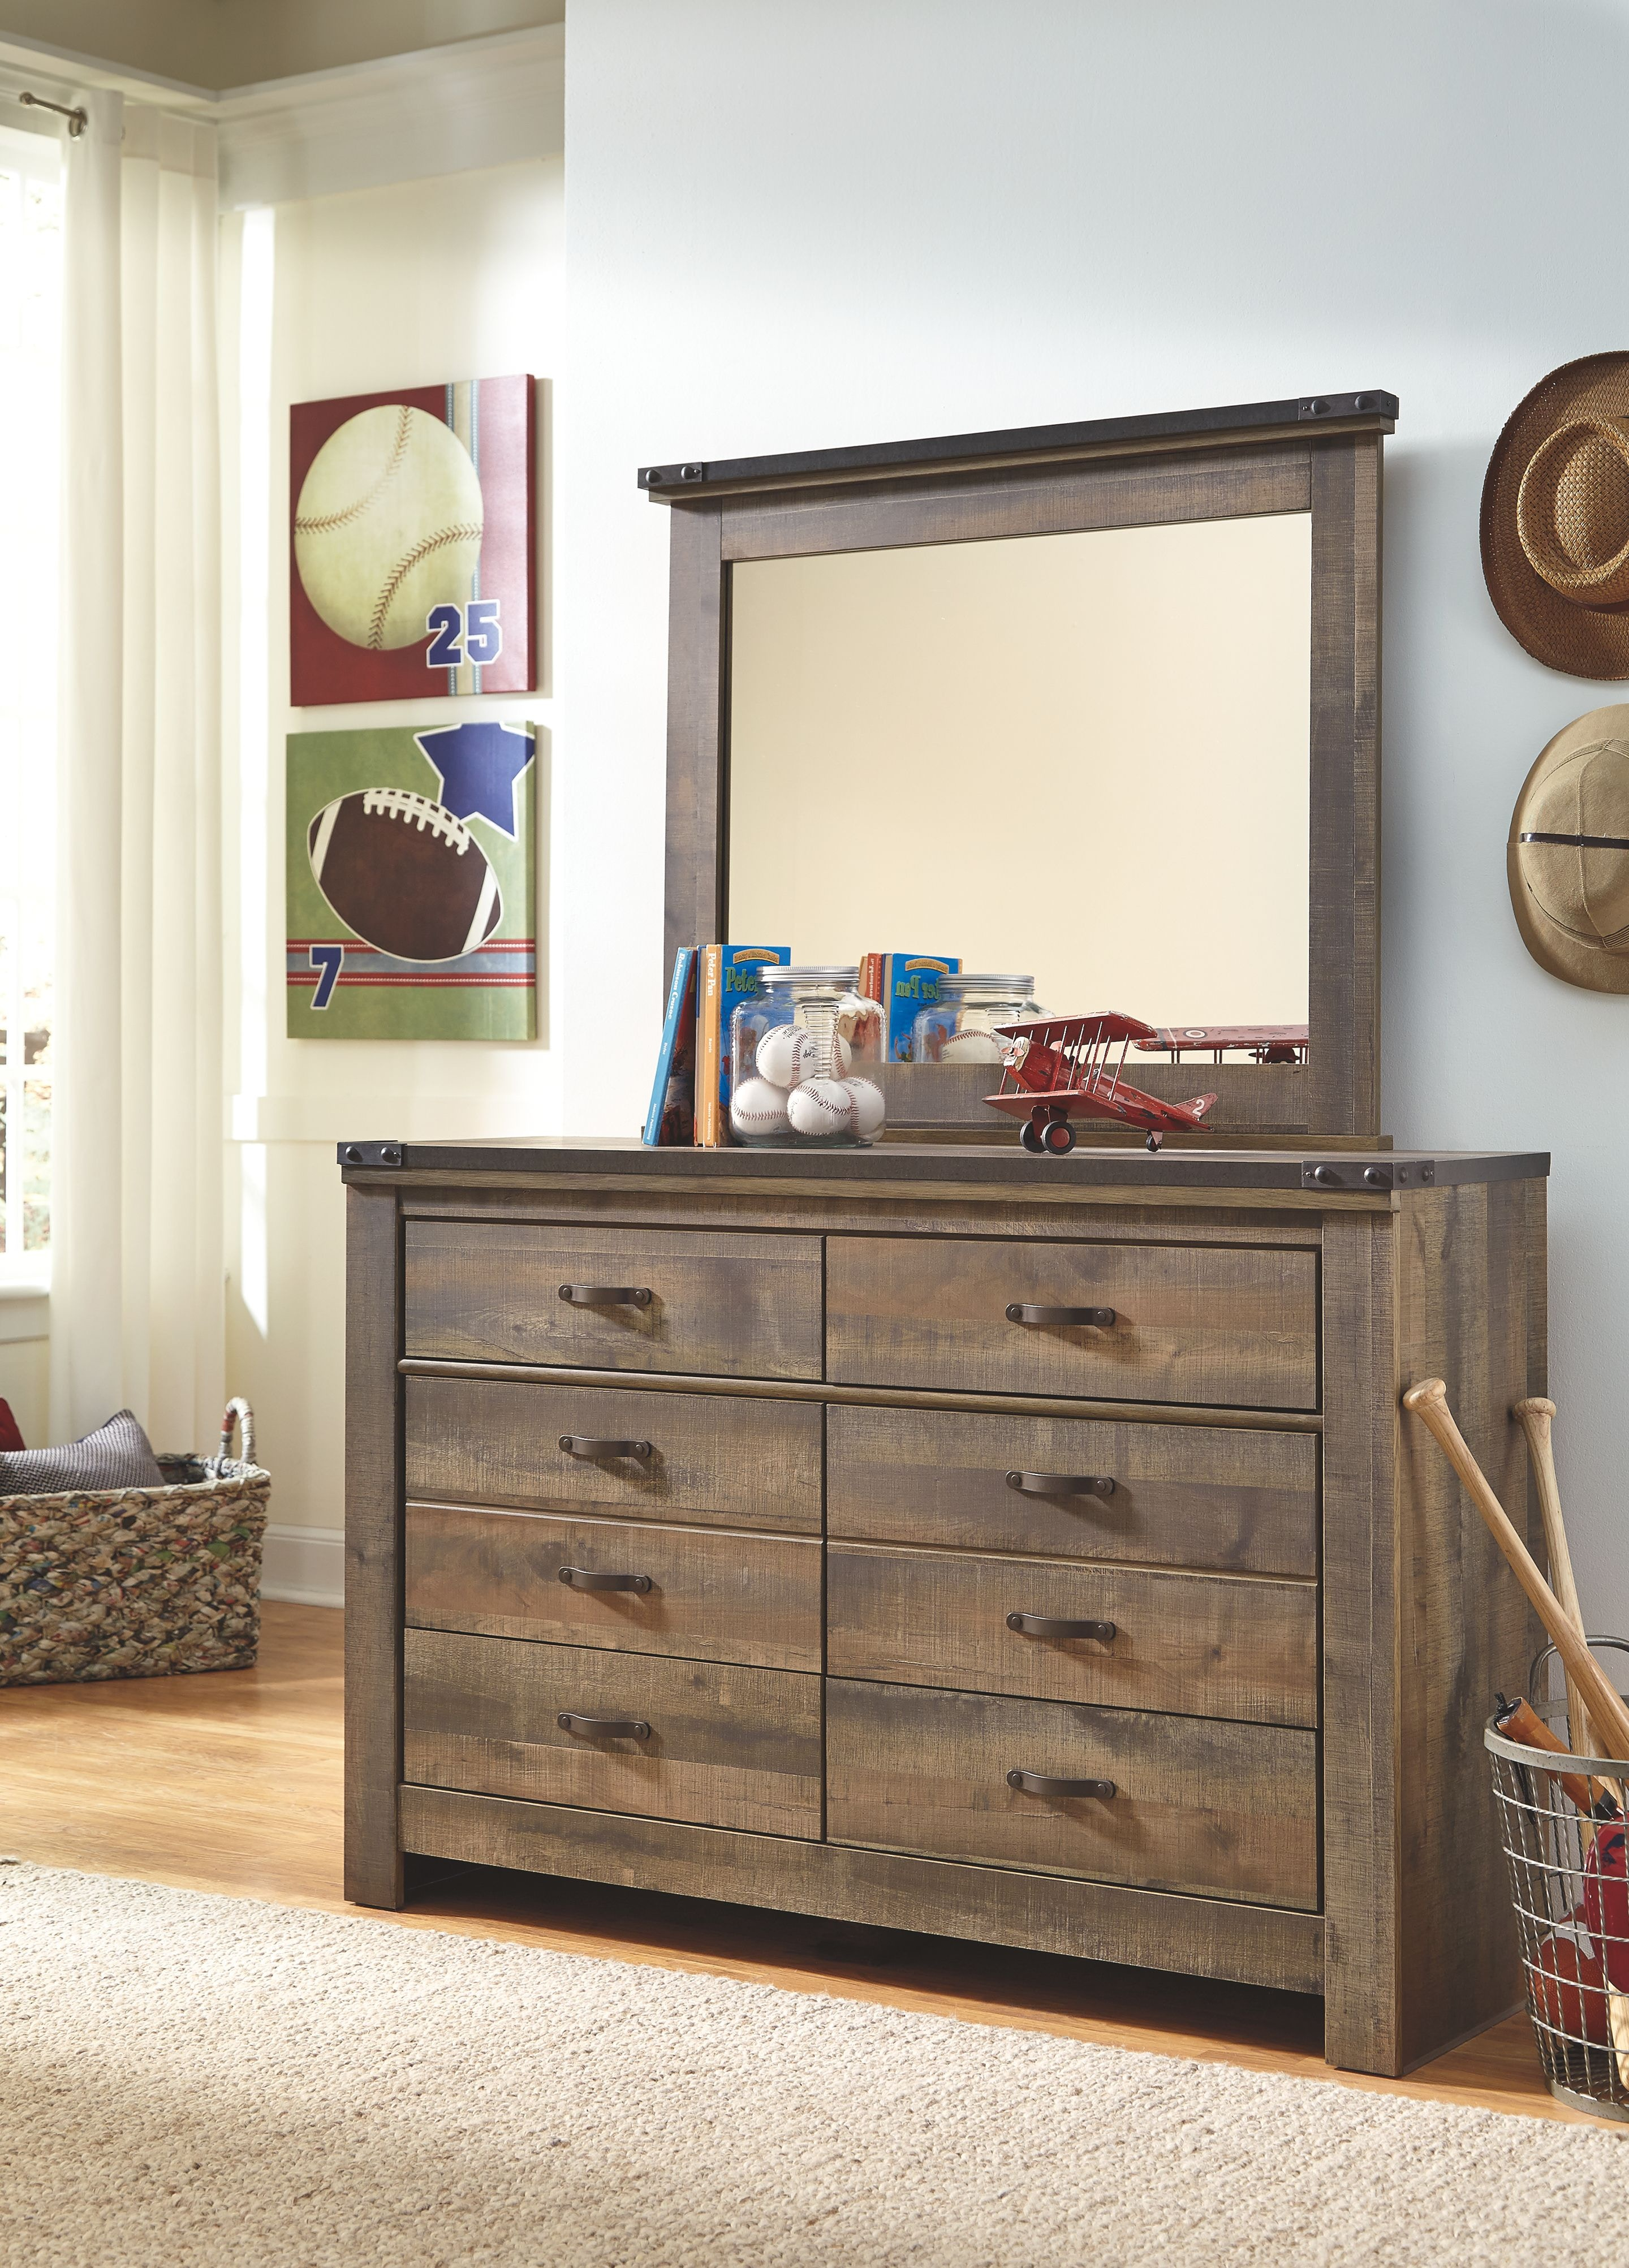 Signature Design By Ashley Bedroom Mirror On Sale At Elgin Furniture Stores  In Euclid, Cleveland Heights And North Randall